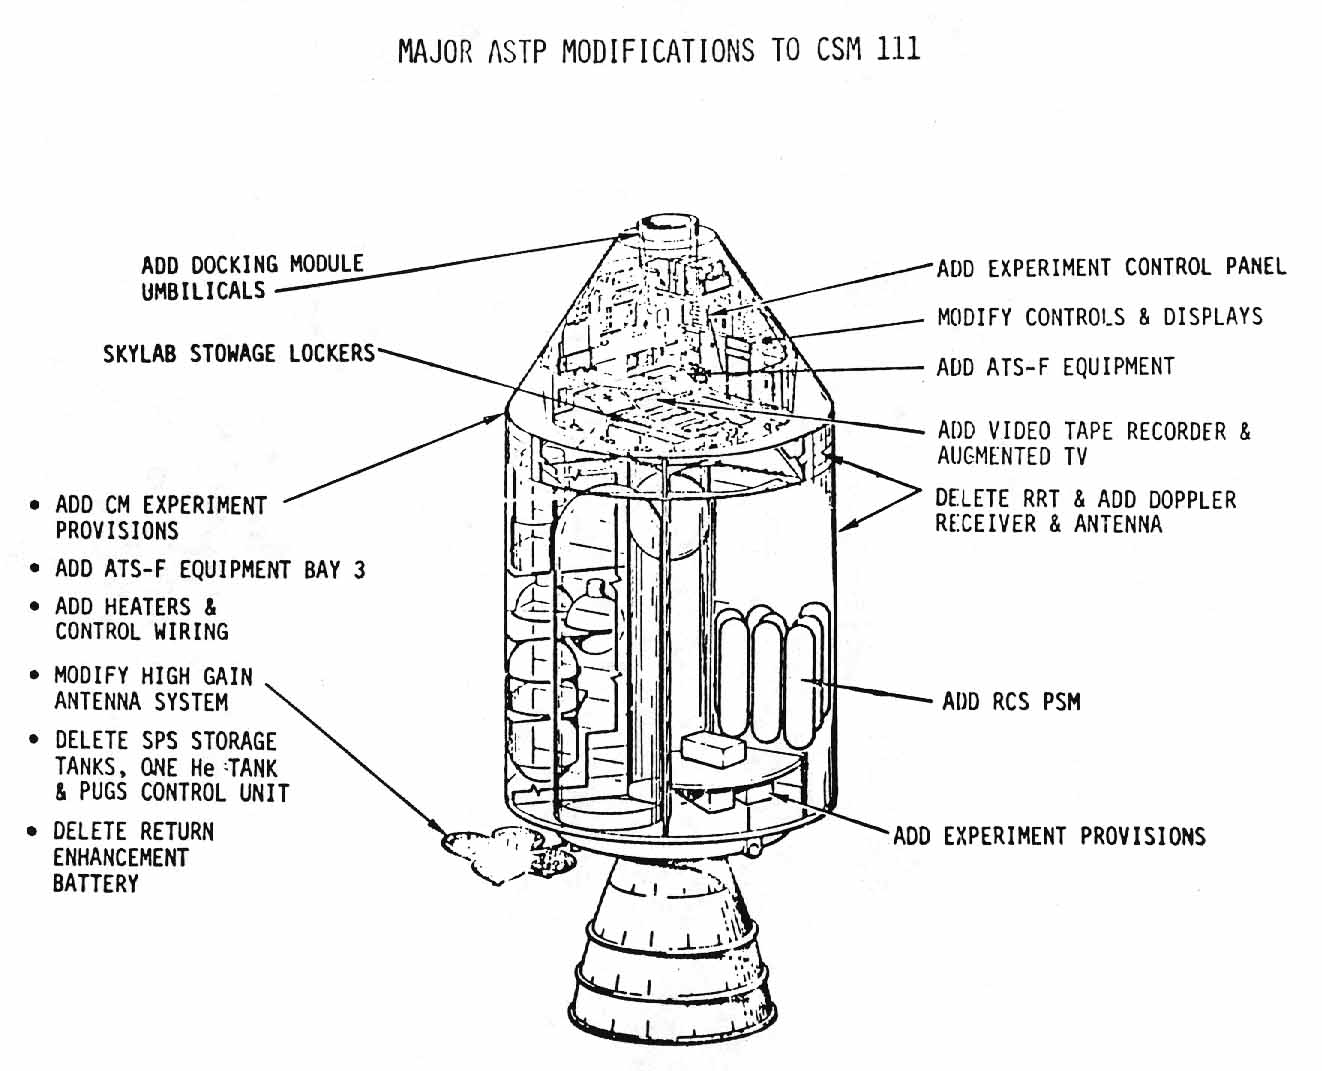 cross-sectional drawing of the ASTP  modifications